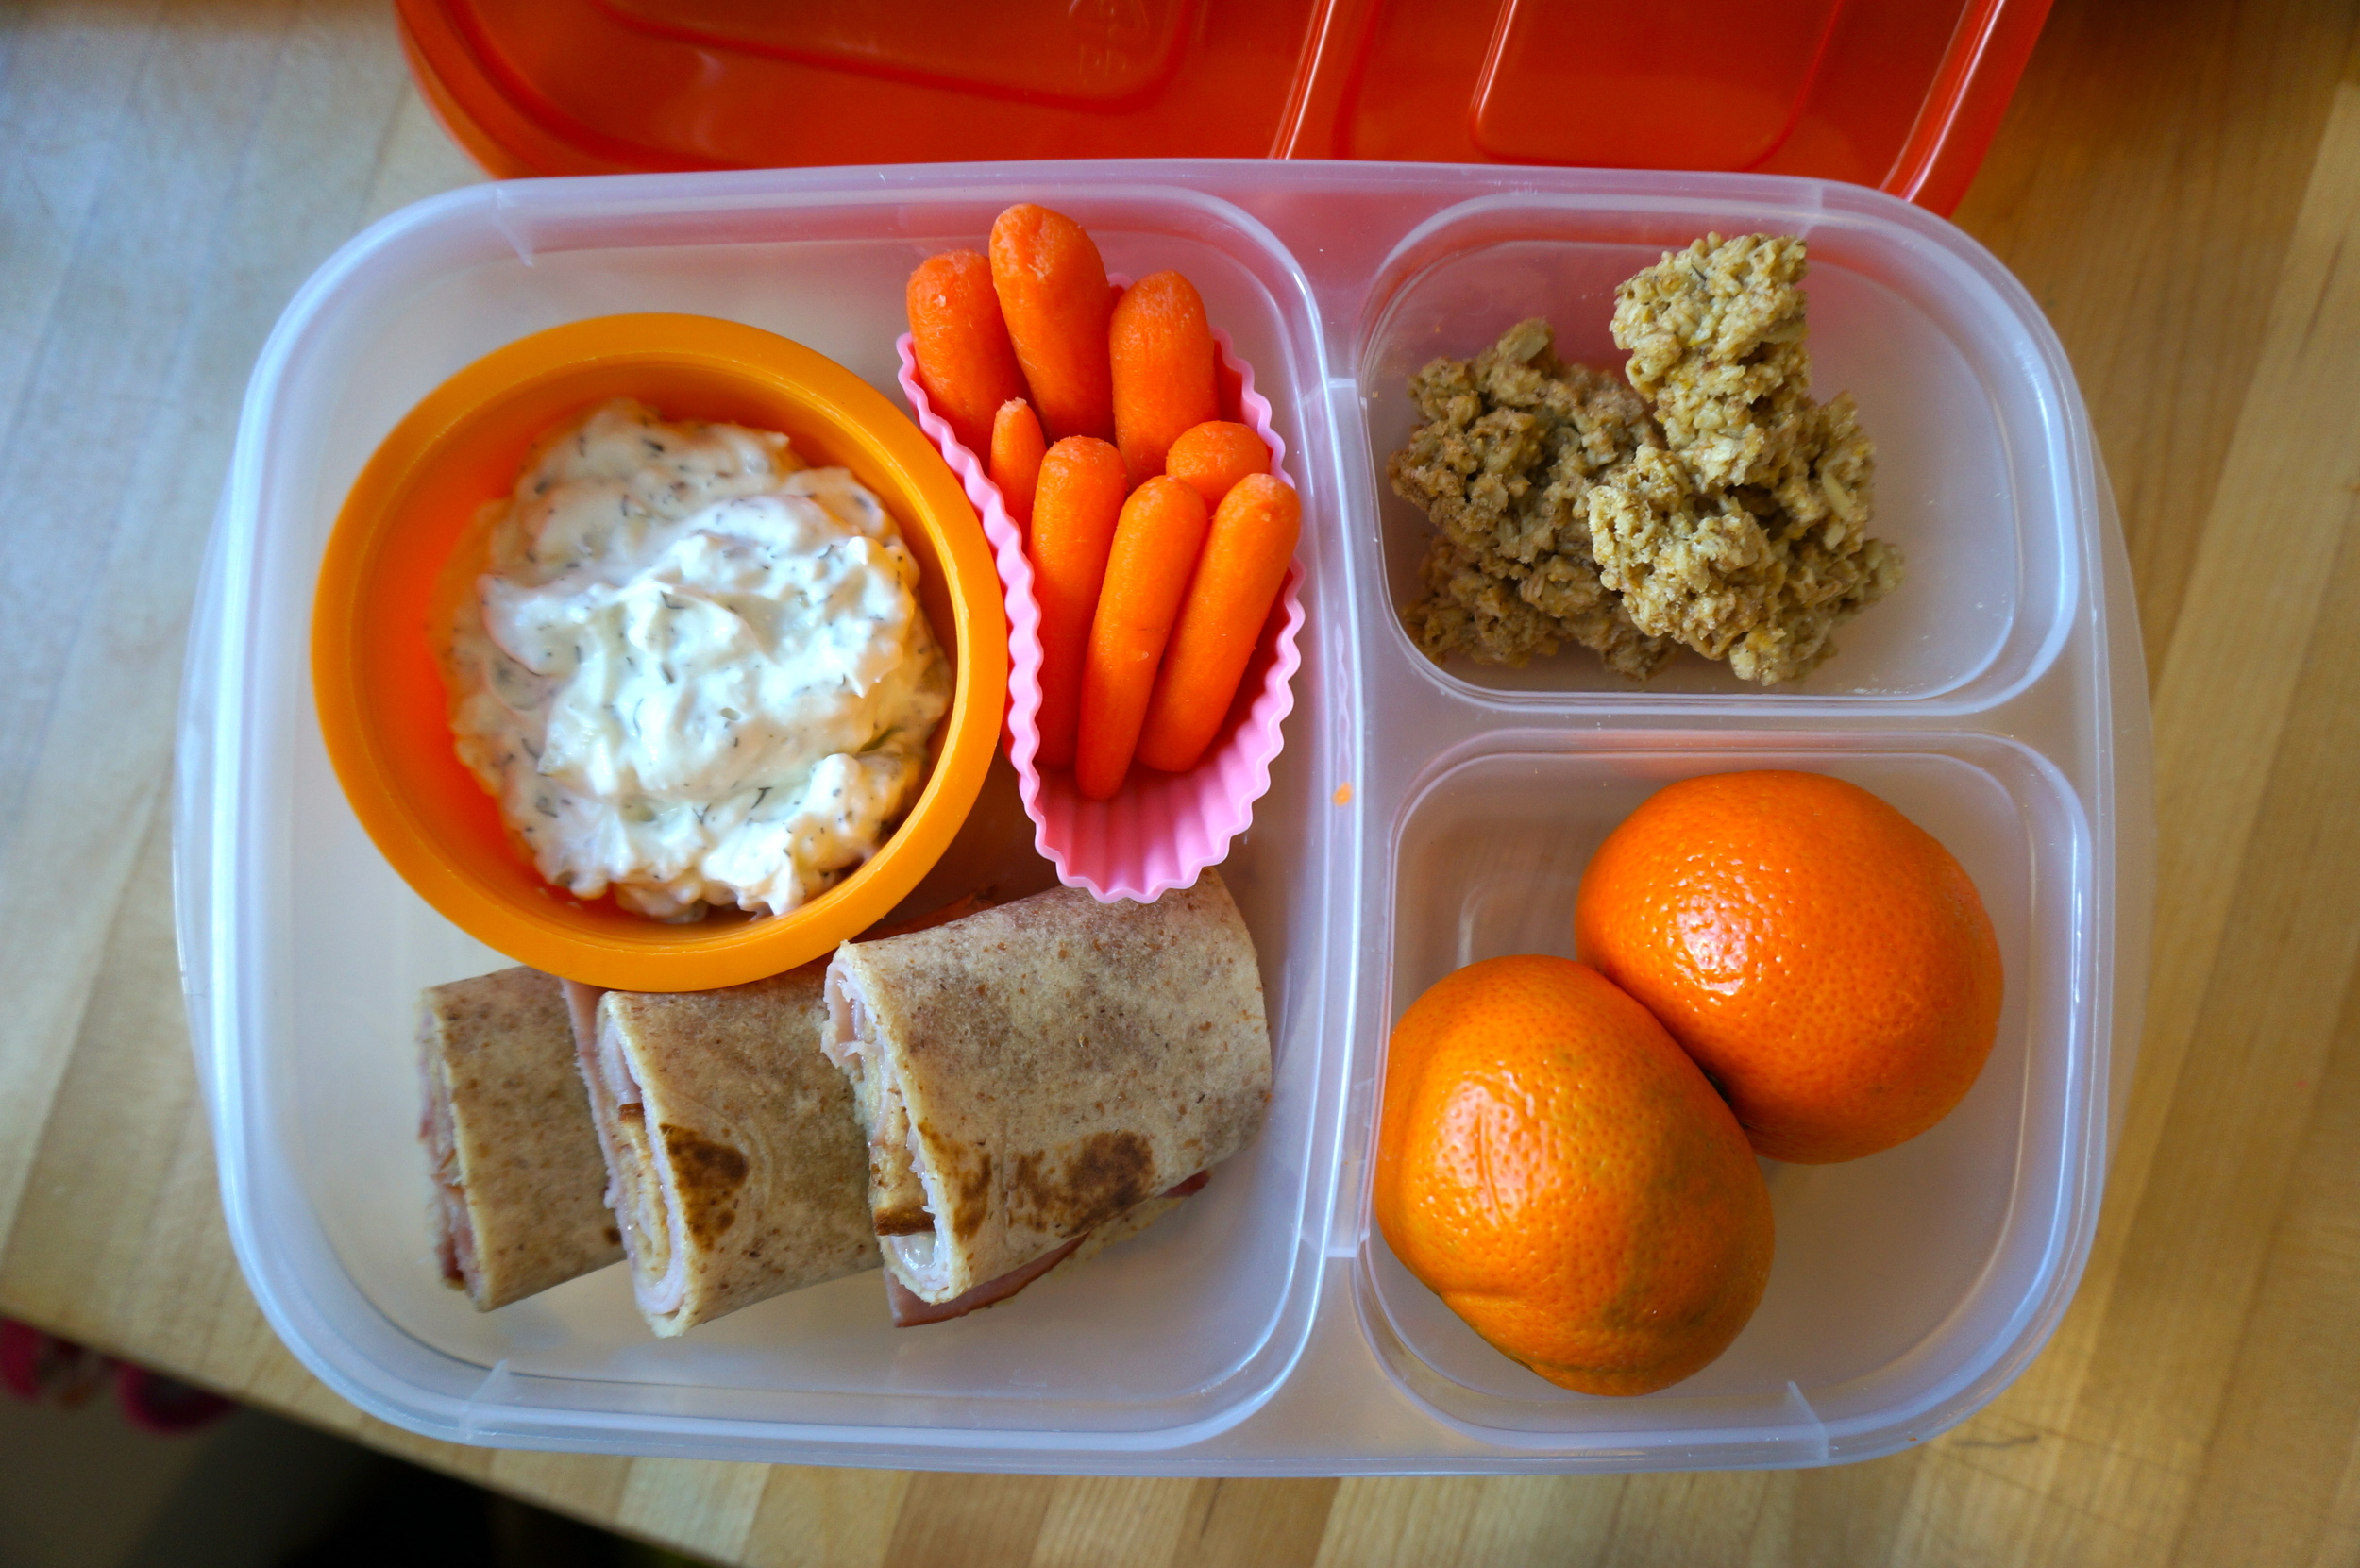 The no-hassle, 4 minute lunch!